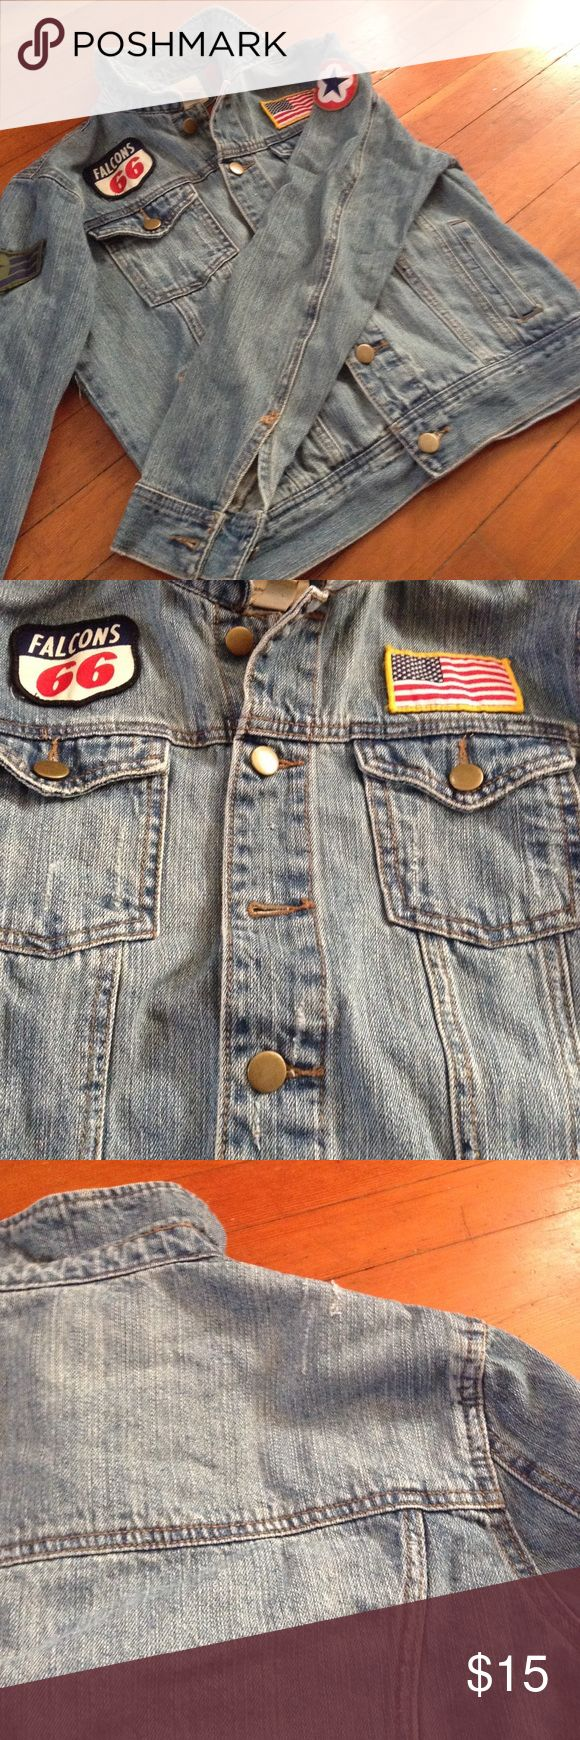 Loose Denim Jacket w/ Patches Light wash ladies denim jacket with various patches. Distressed detailing. Marked as a size small but is a loose fitting style - I am an size L/XL and this is fitted on me. Forever 21 Jackets & Coats Jean Jackets